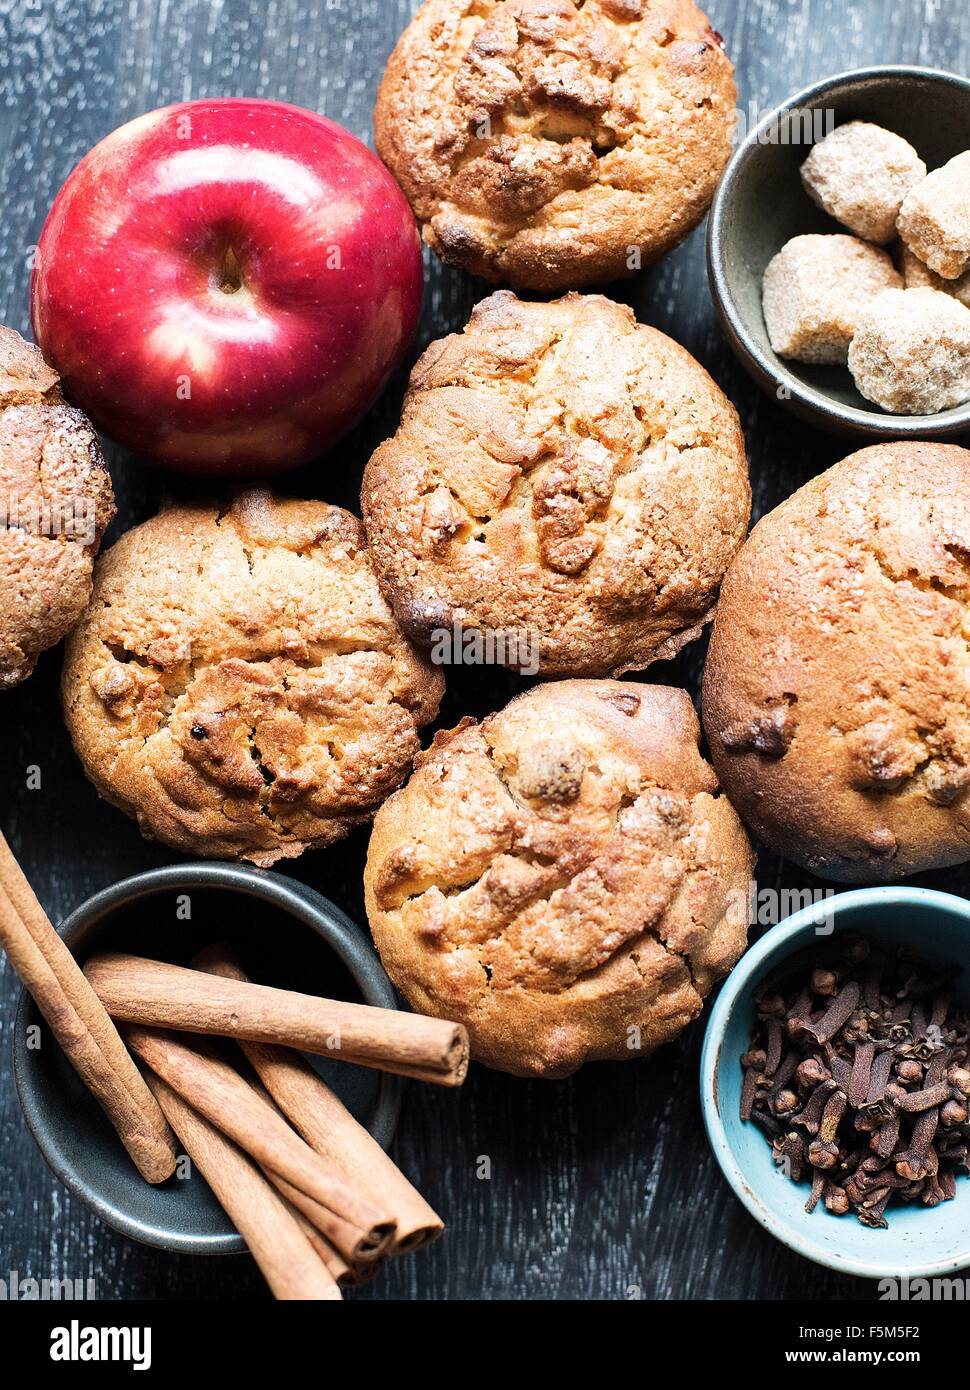 Muffins with apple, cinnamon and cloves, overhead view - Stock Image